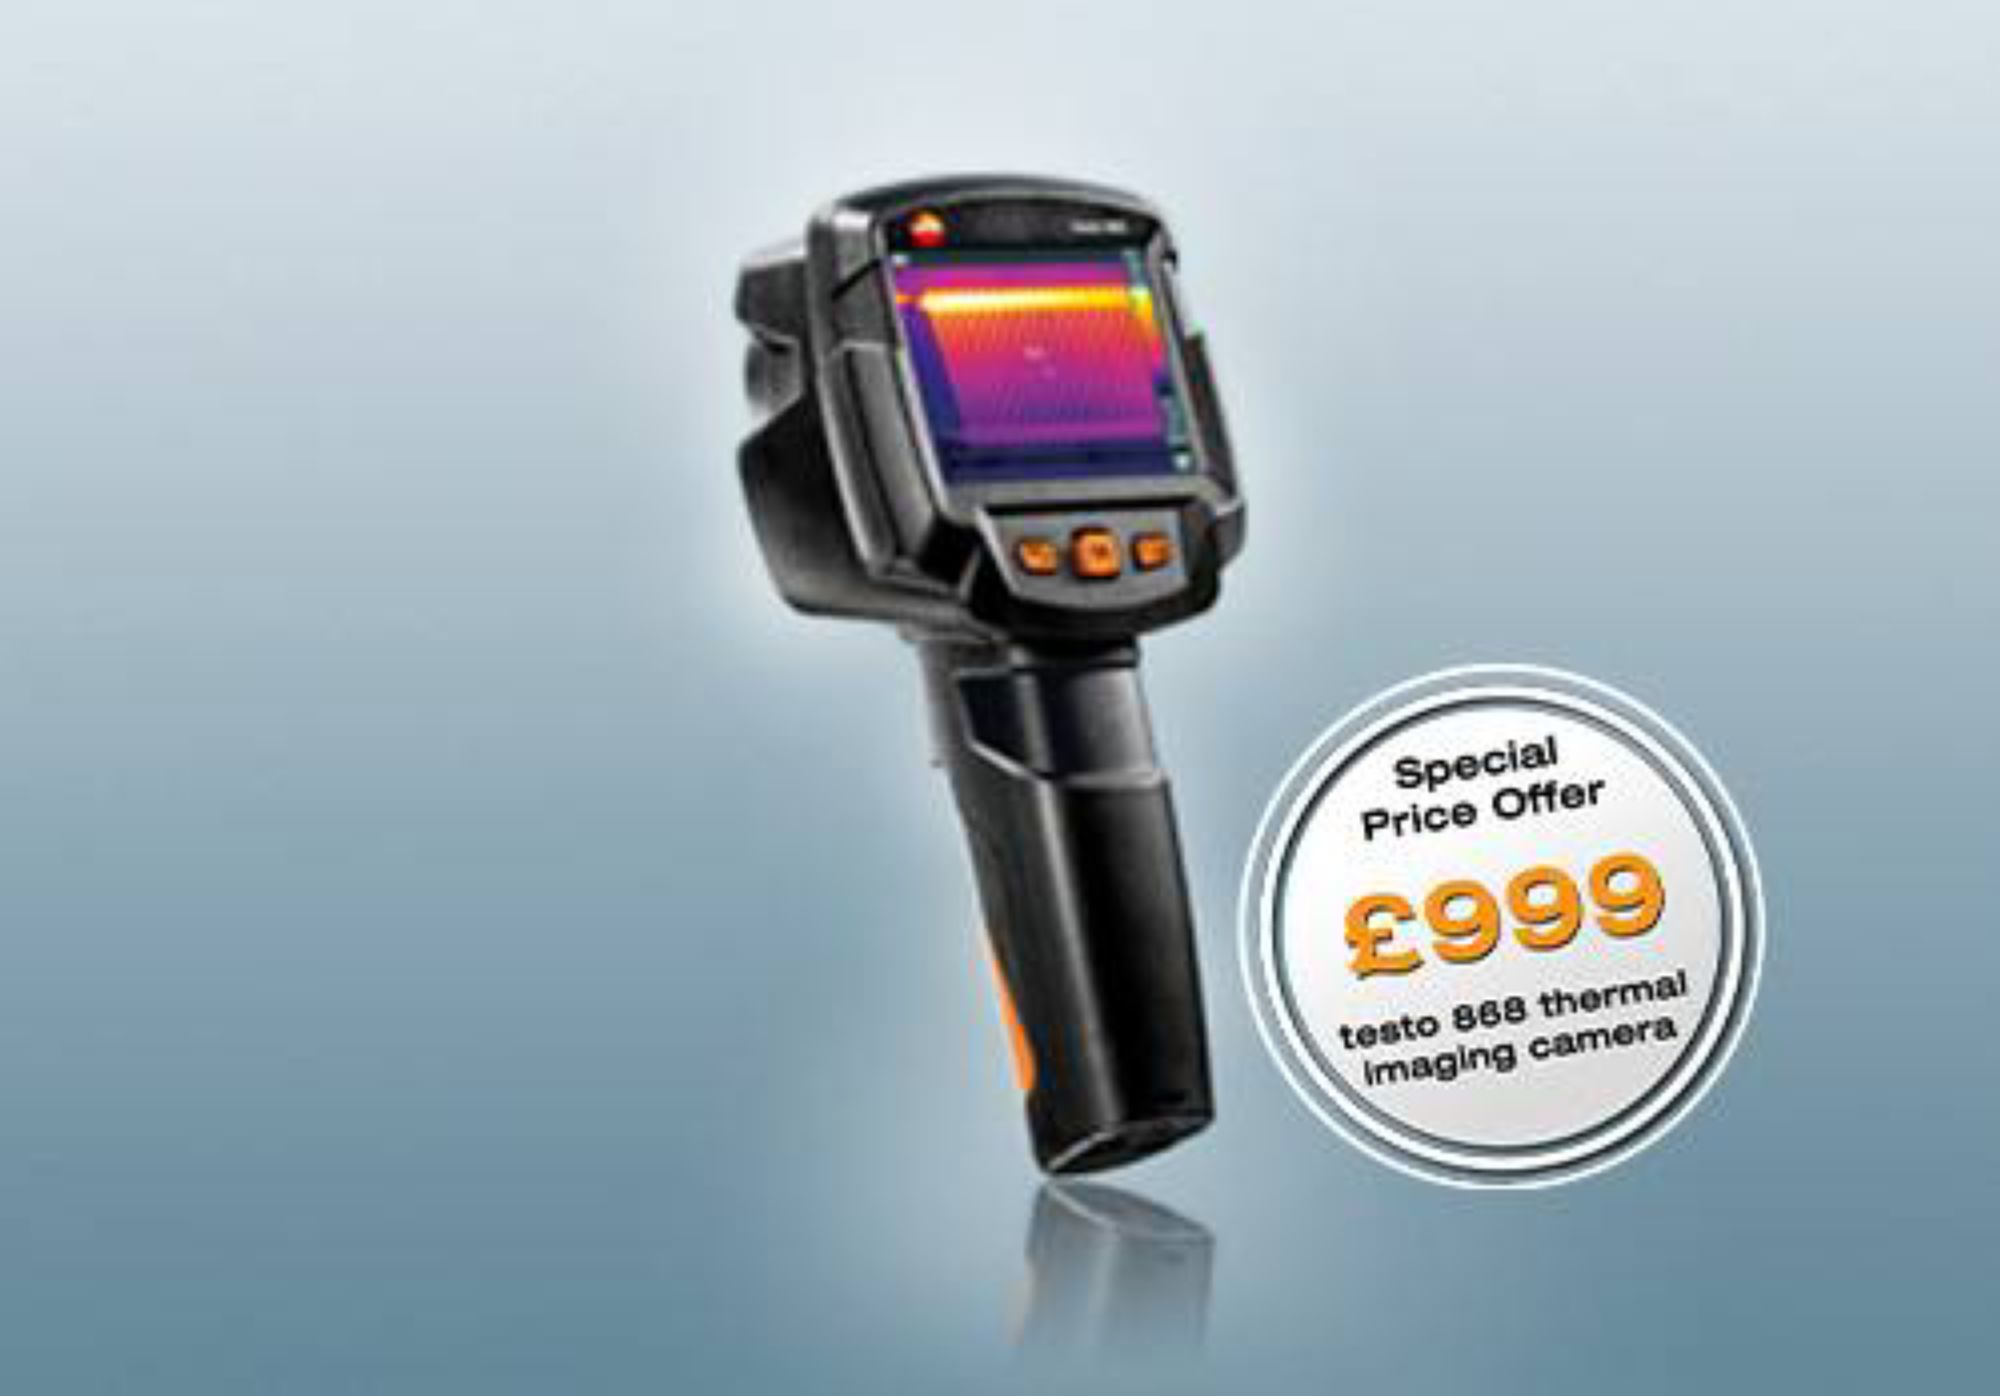 testo 868: Smart and networked thermal imaging.